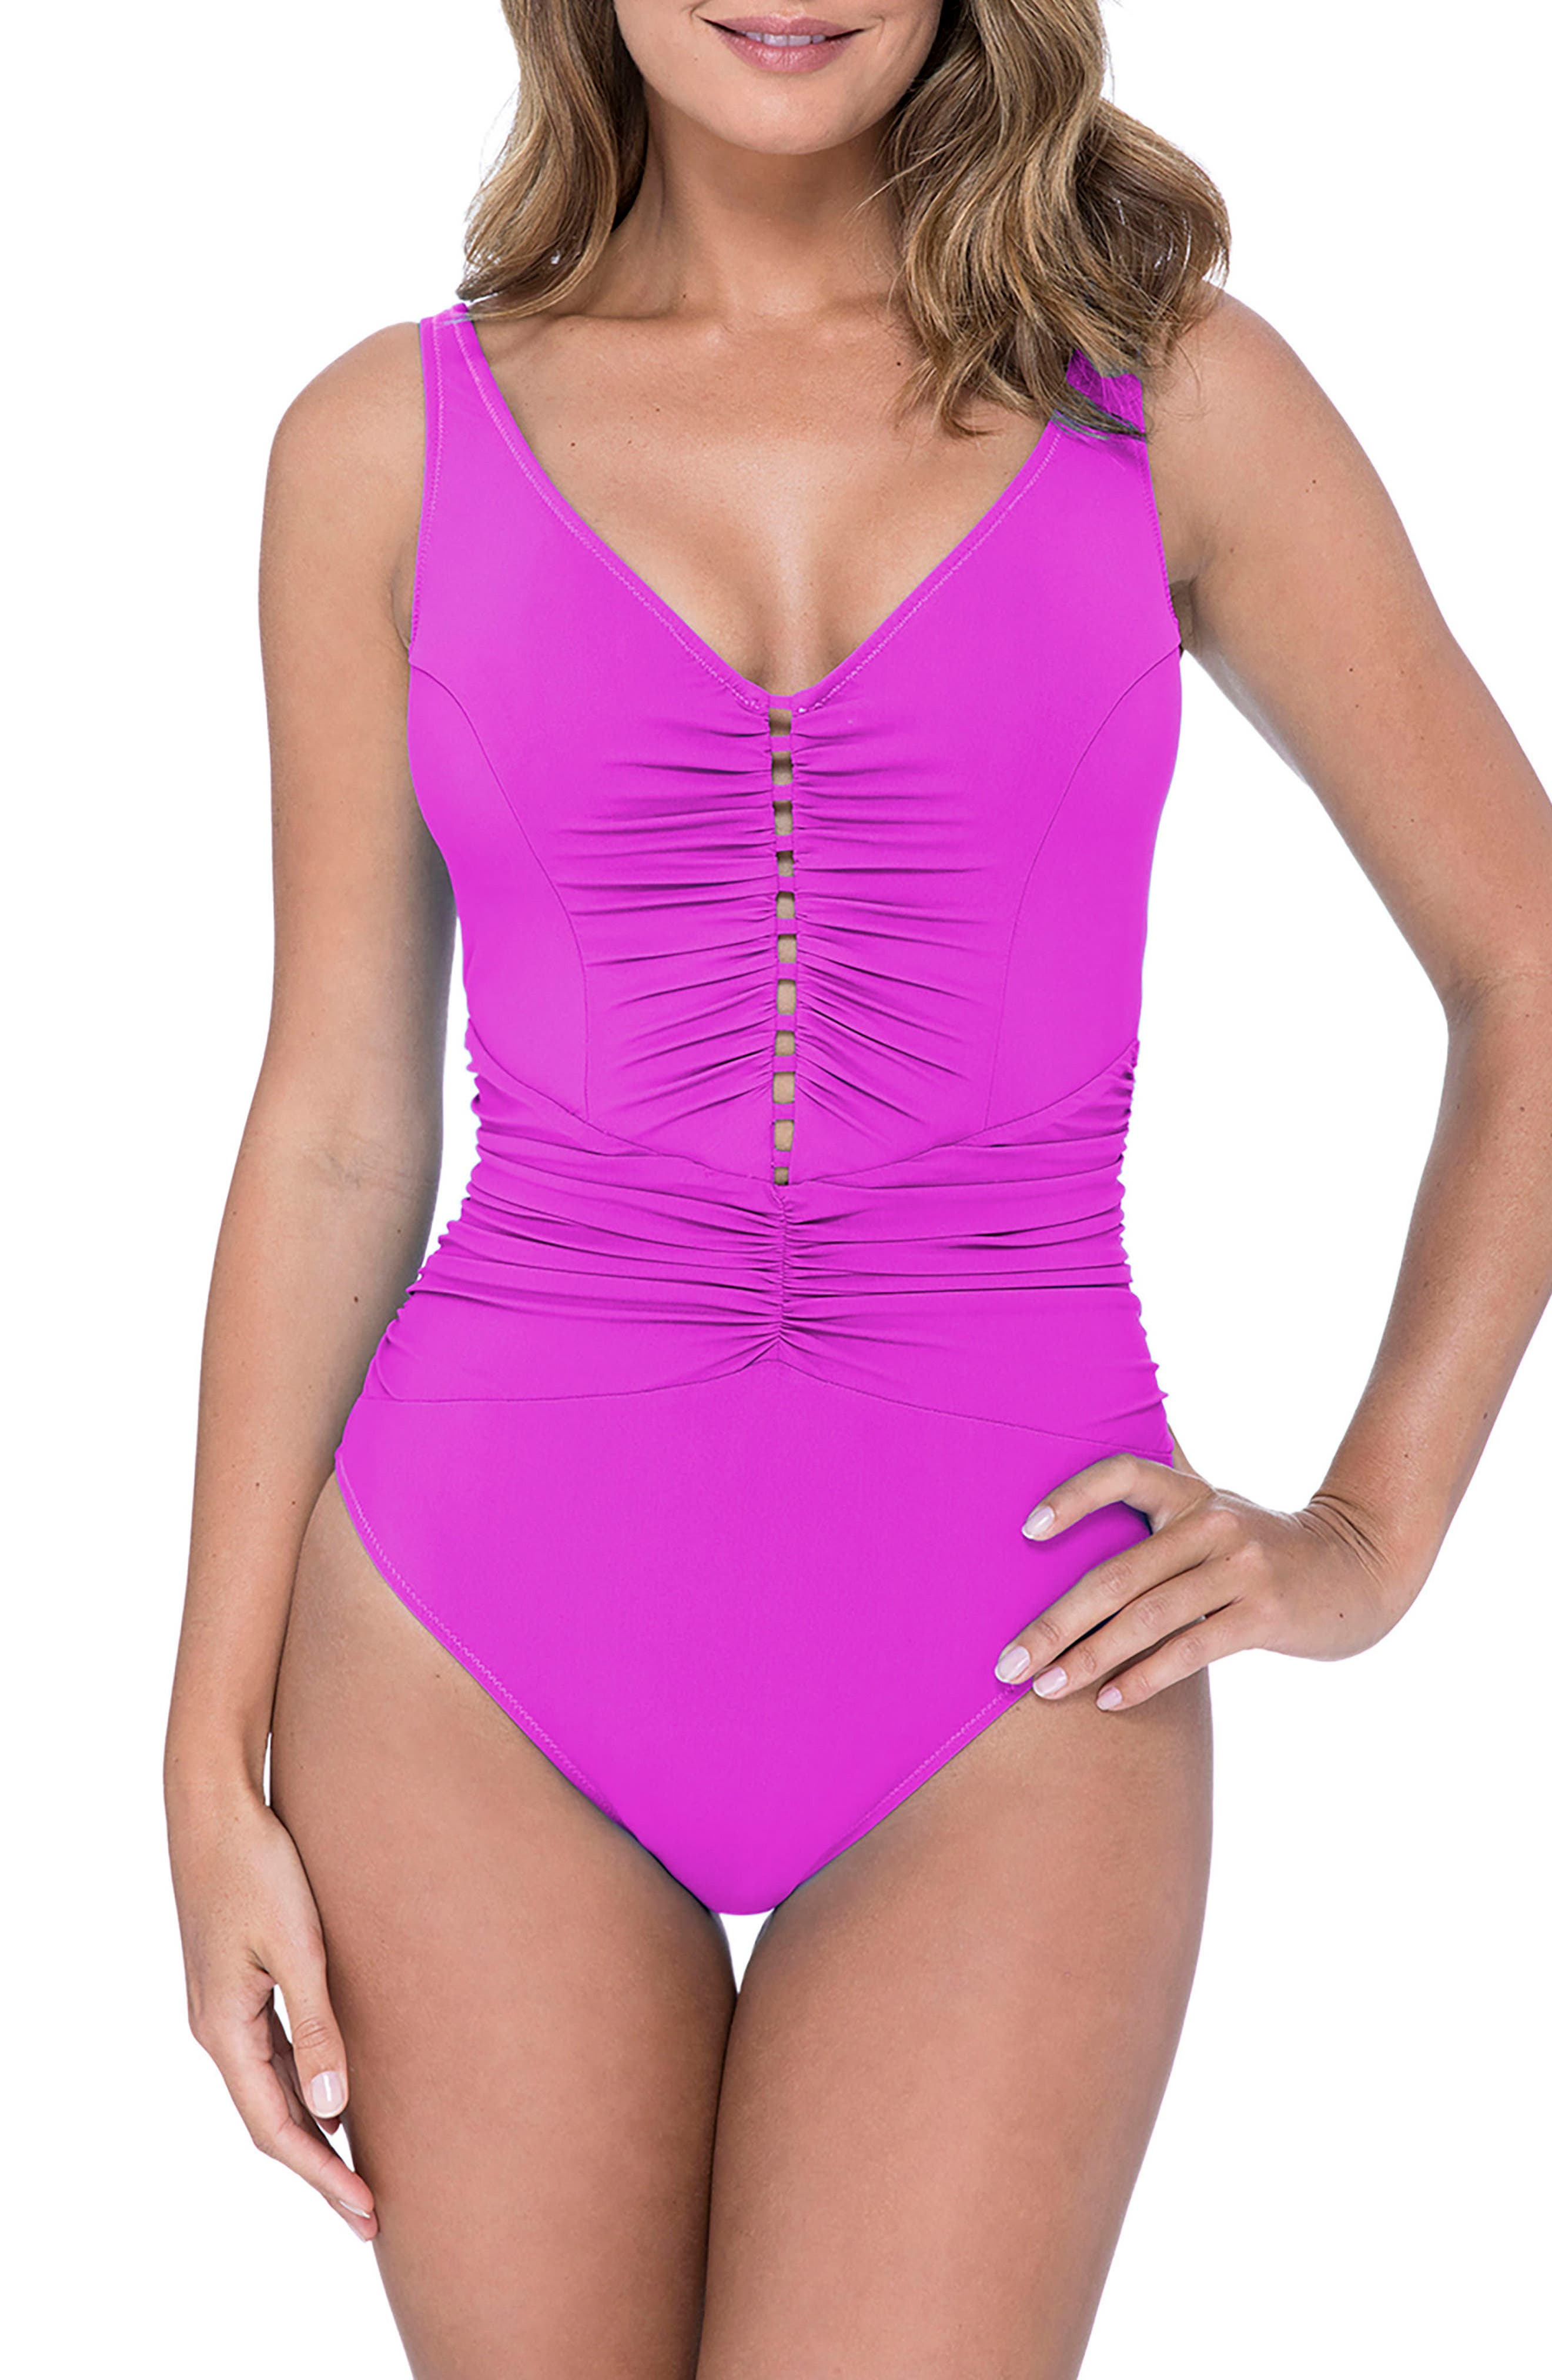 Cocktail Party One-Piece Swimsuit,                         Main,                         color, WARM VIOLA